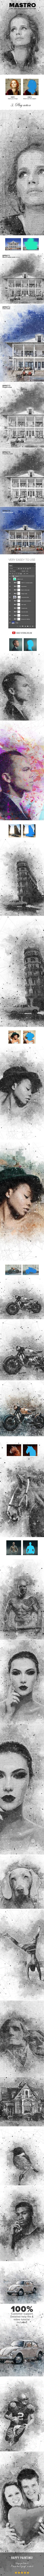 Buy Mastro Line Art Photoshop Action by walllow on GraphicRiver. Mastro convert your images into premium line art sketch effect. This action is very suitable for photos of portraits. Line Art Photoshop, Sketch Photoshop, Cool Photoshop, Photoshop Photos, Photoshop Effects, Photoshop Tutorial, Photoshop Actions, Wildlife Photography, Creative Photography